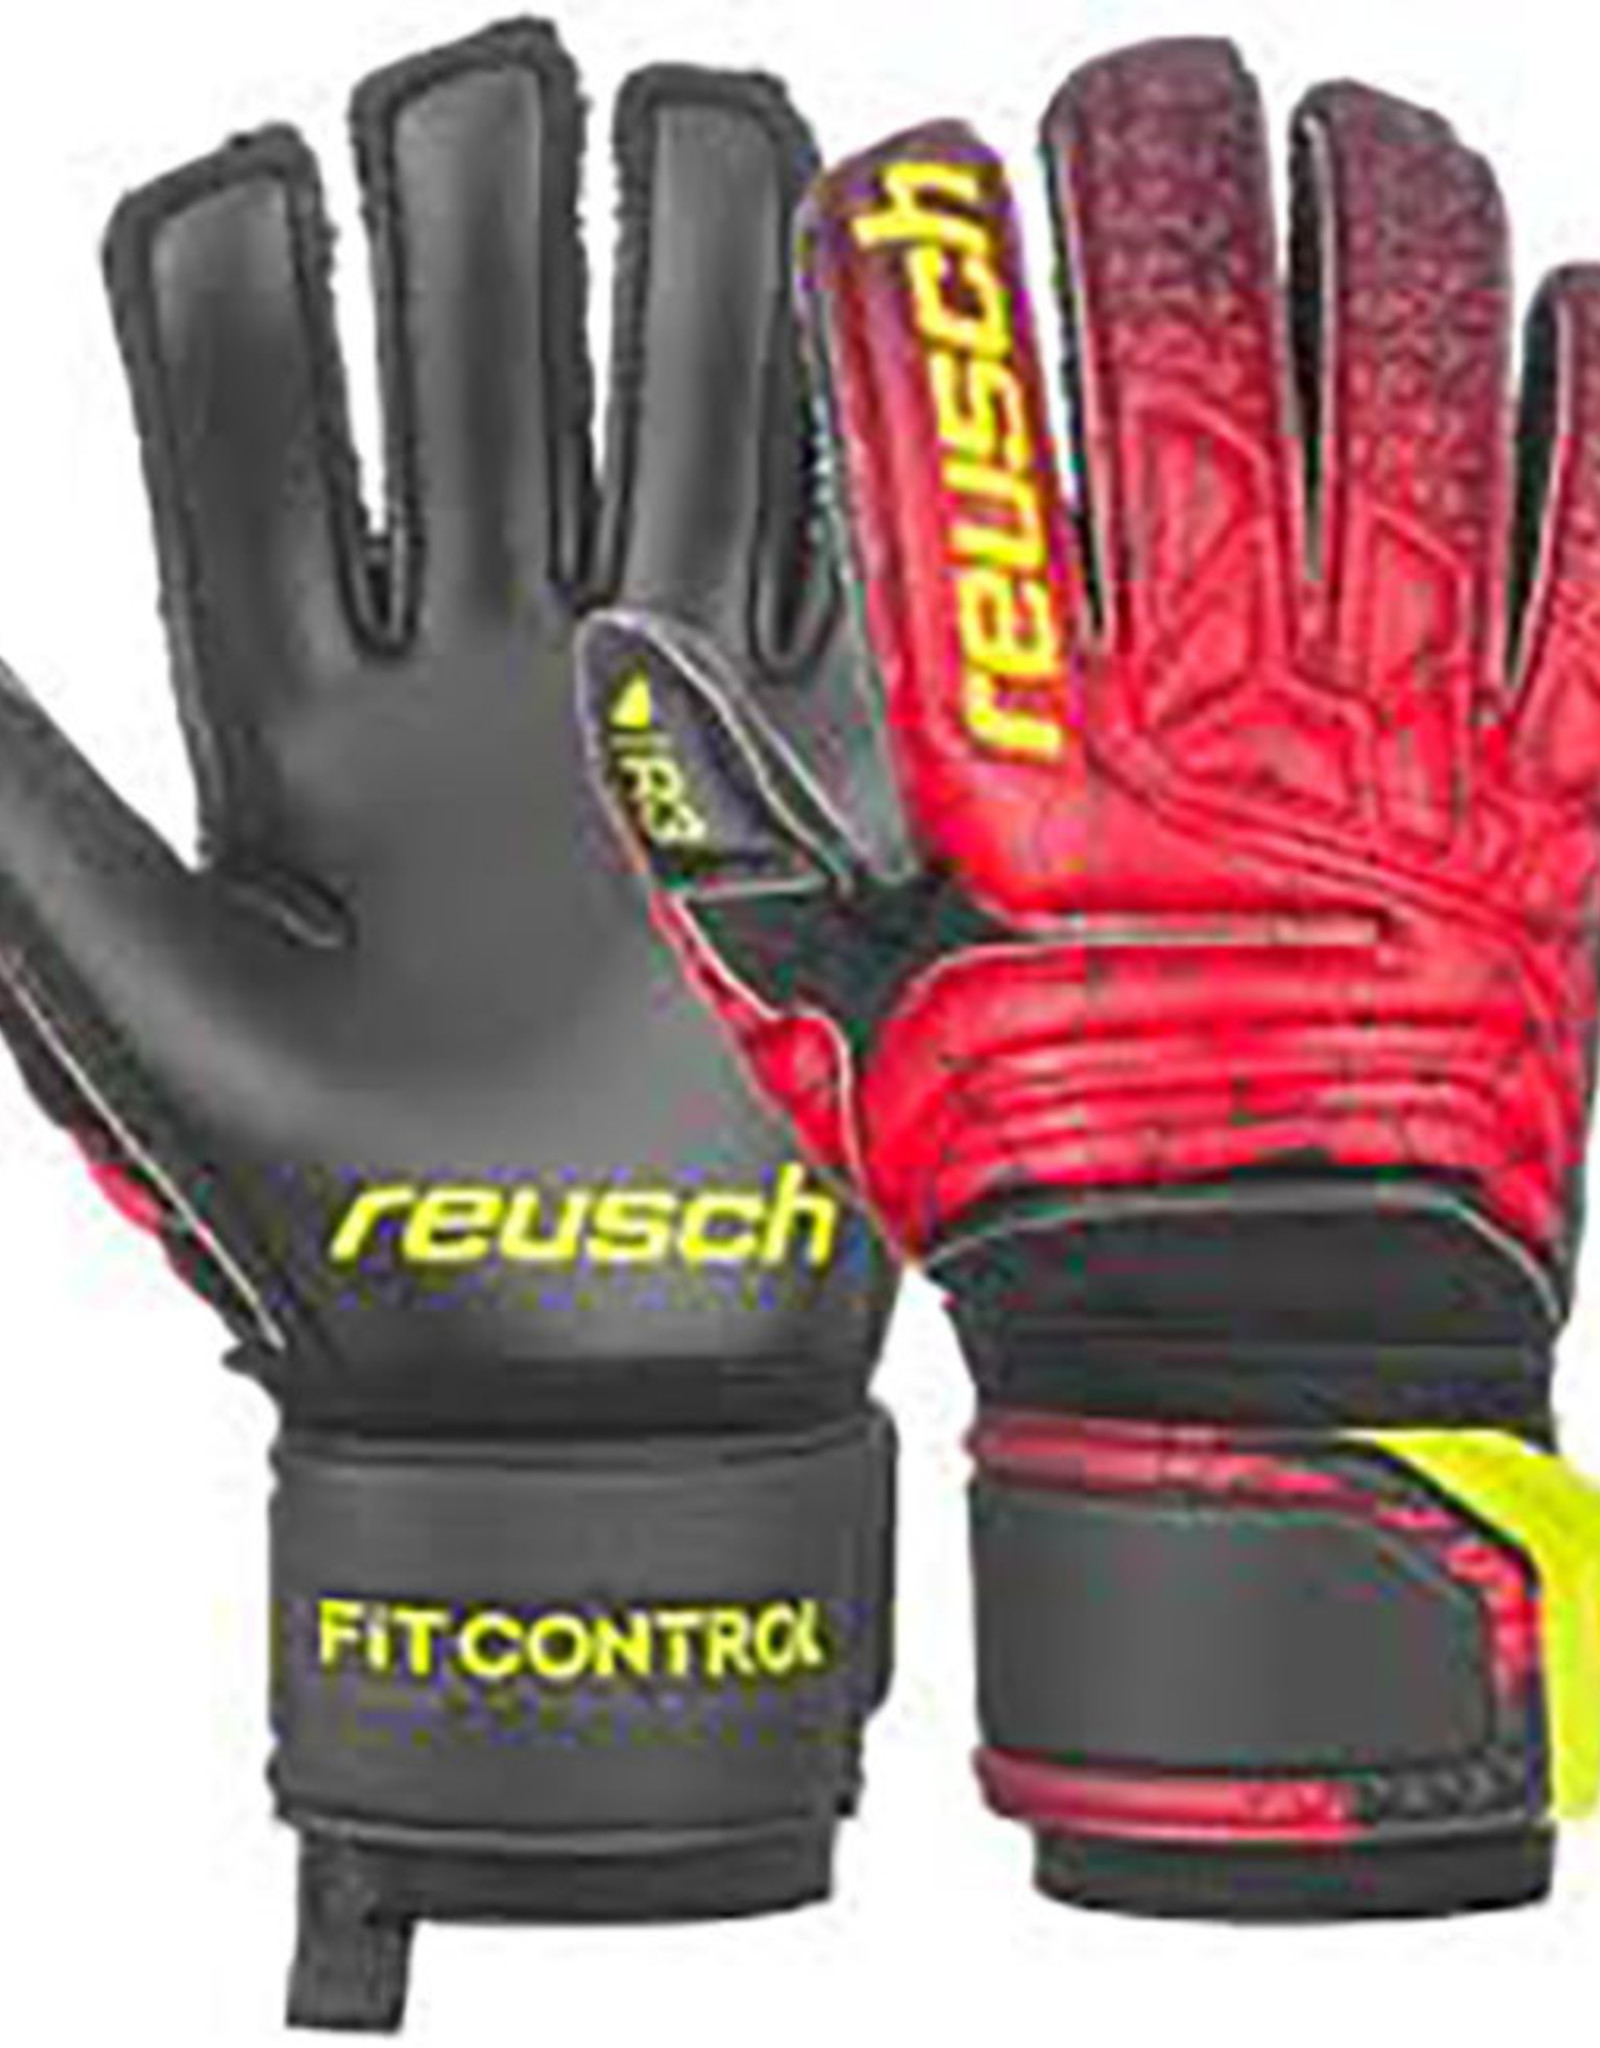 Reusch  fit control R3 jr